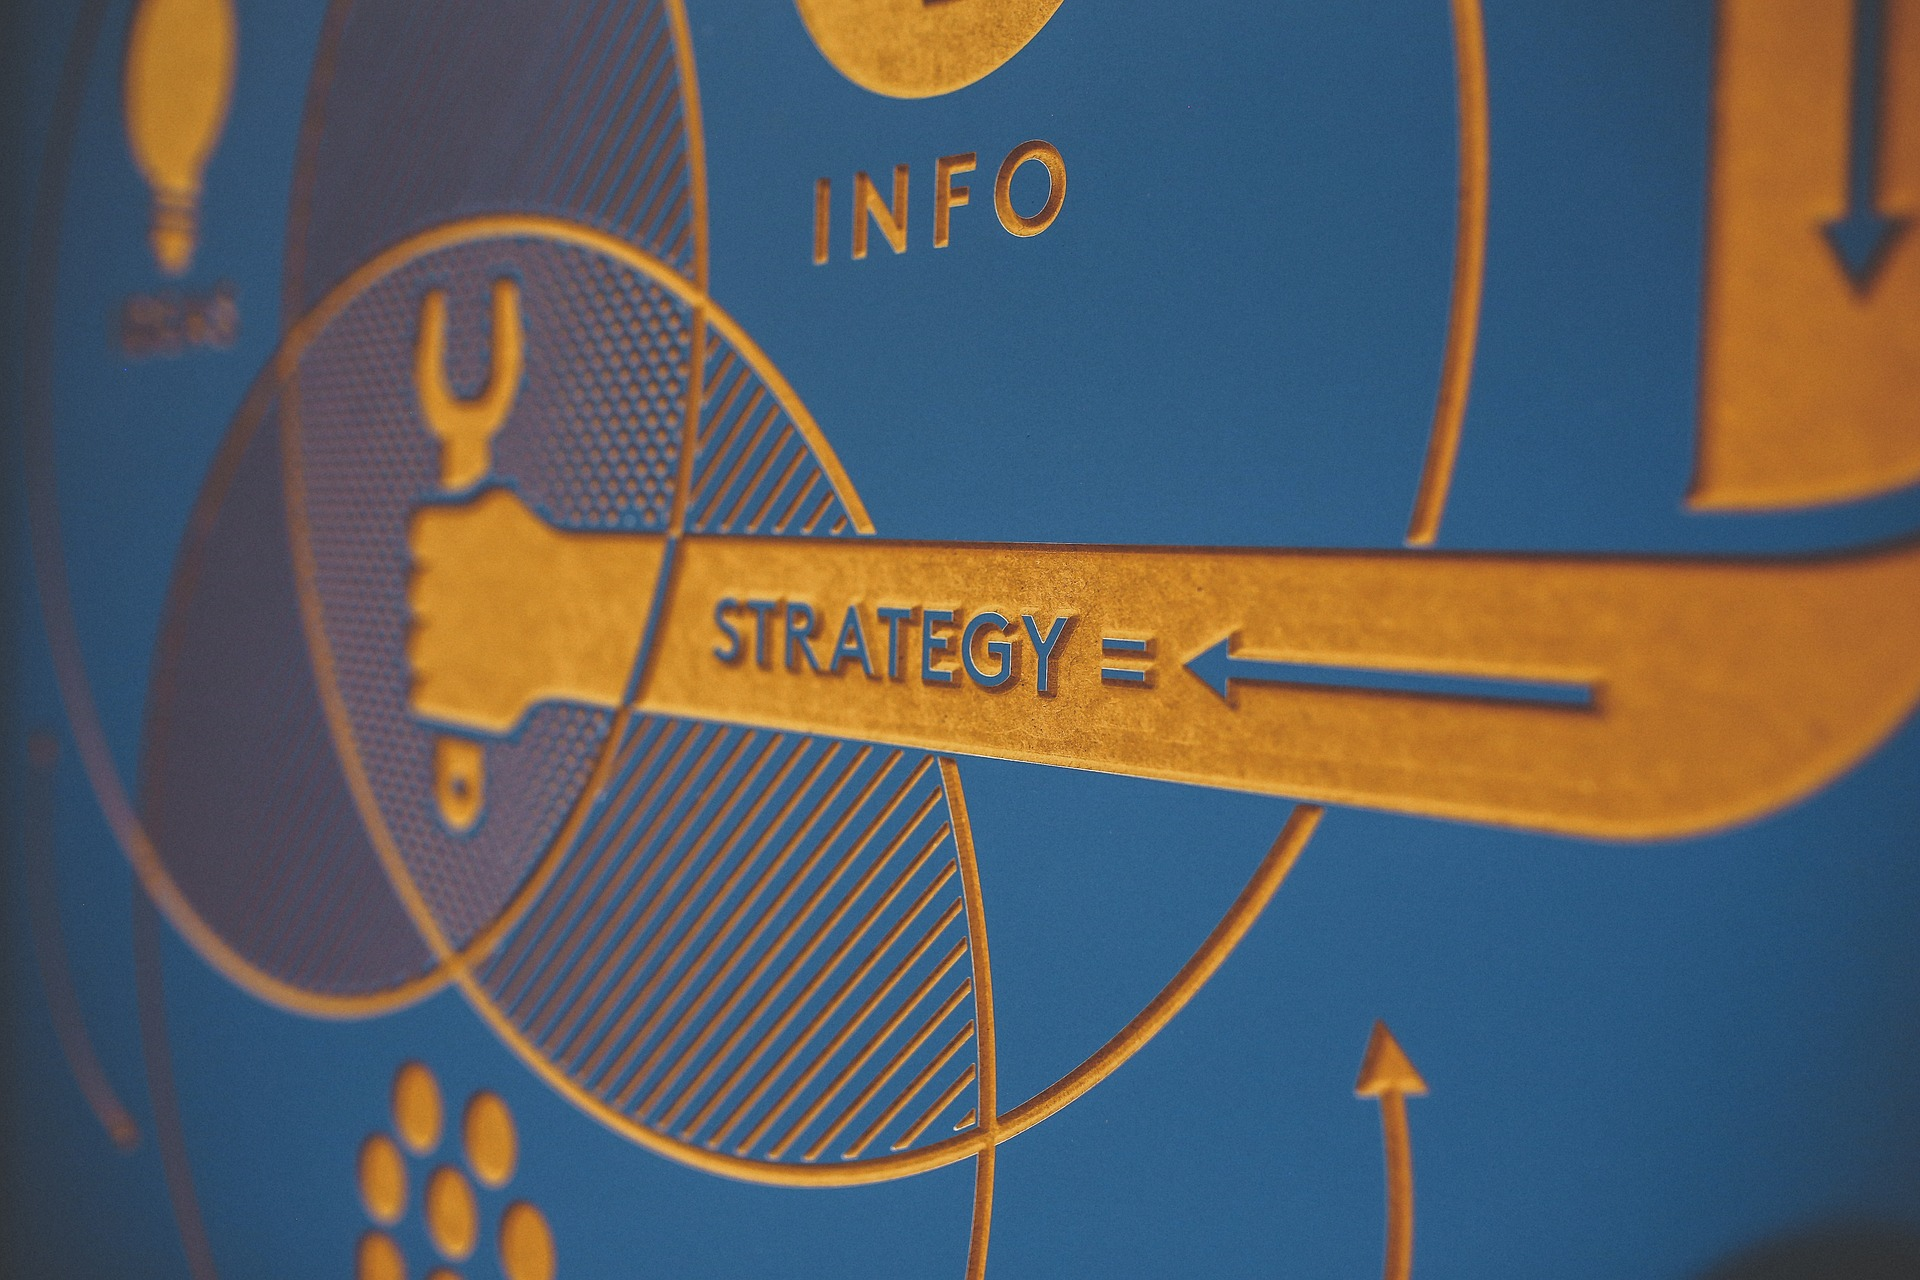 The image shows a hand with text saying Strategy and is carrying a tool in the palm showing that it is in process of creating a Strategy.